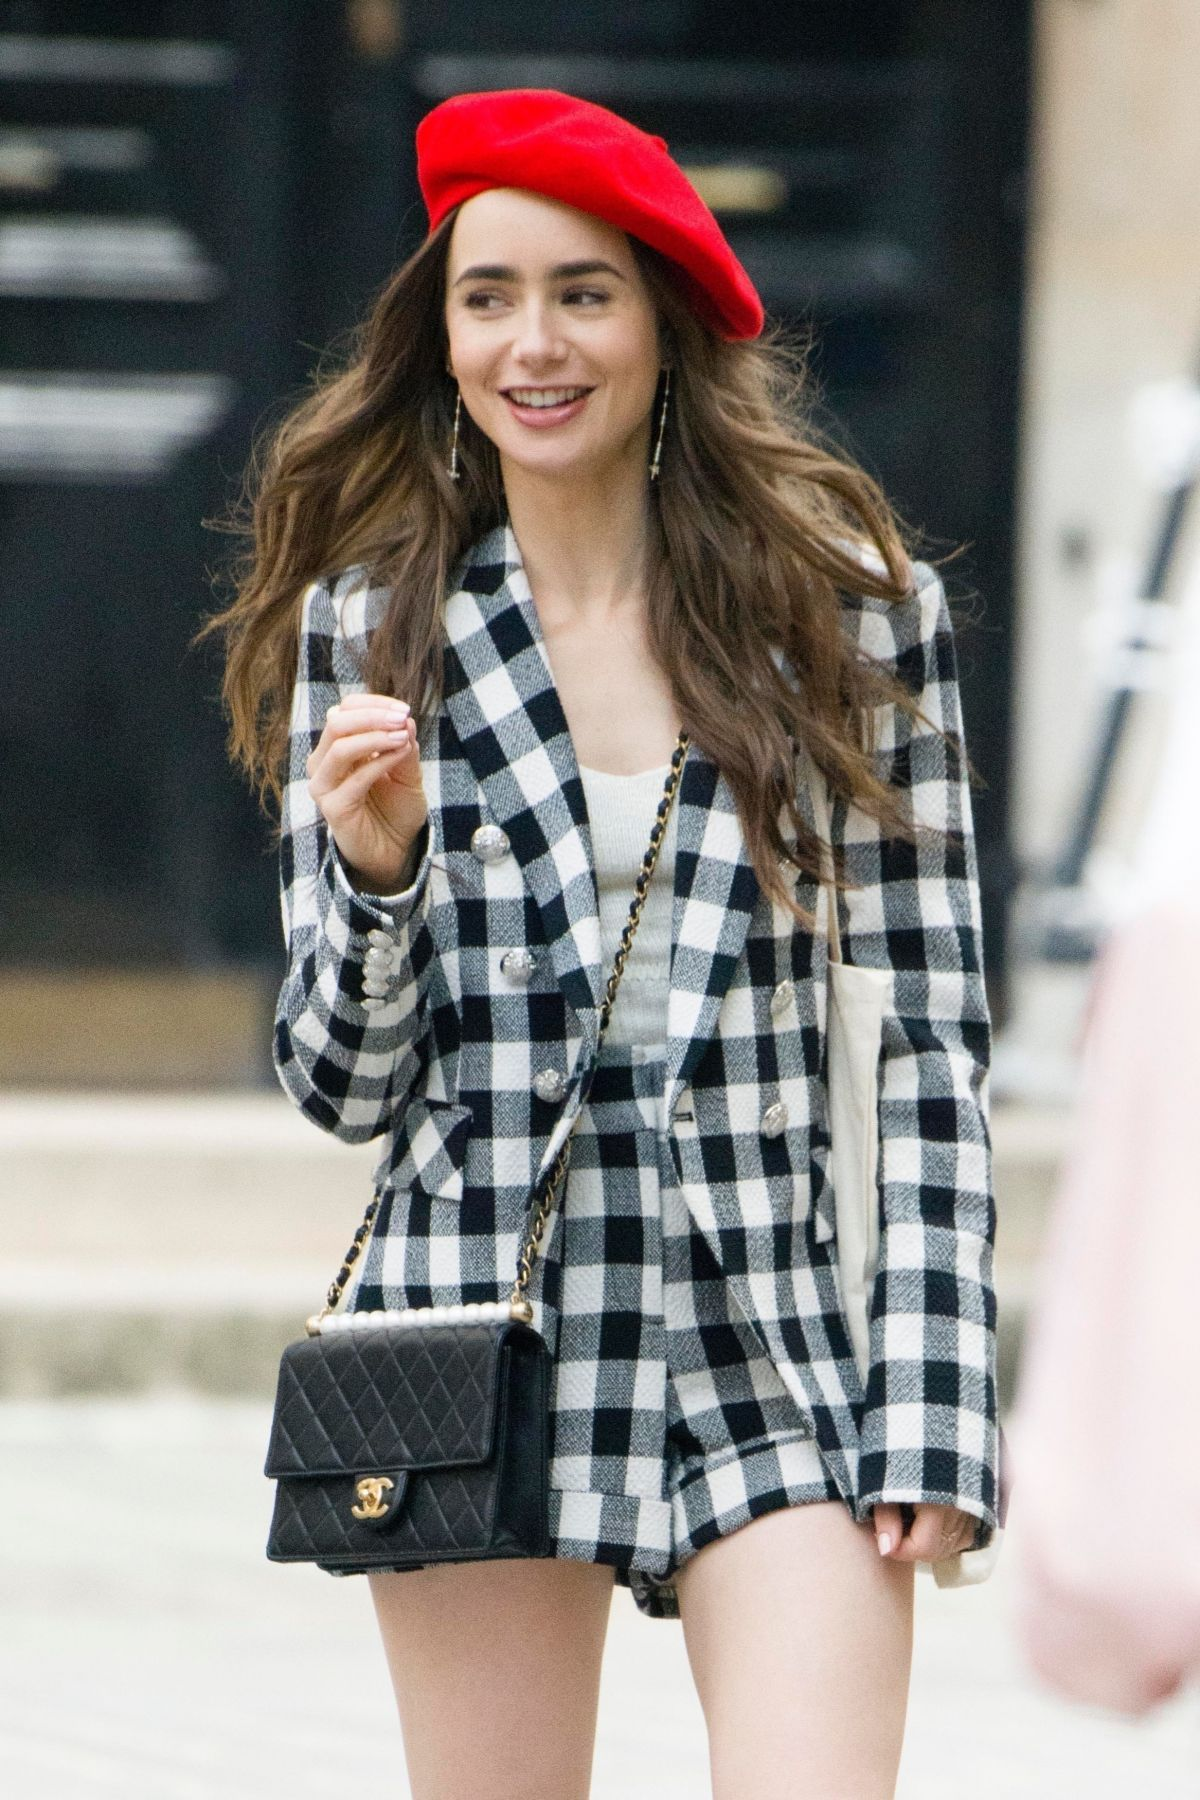 Lily Collins On The Set Of Emily In Paris In Paris 08 14 2019 Lily Collins Style Paris Outfits Celebrity Outfits